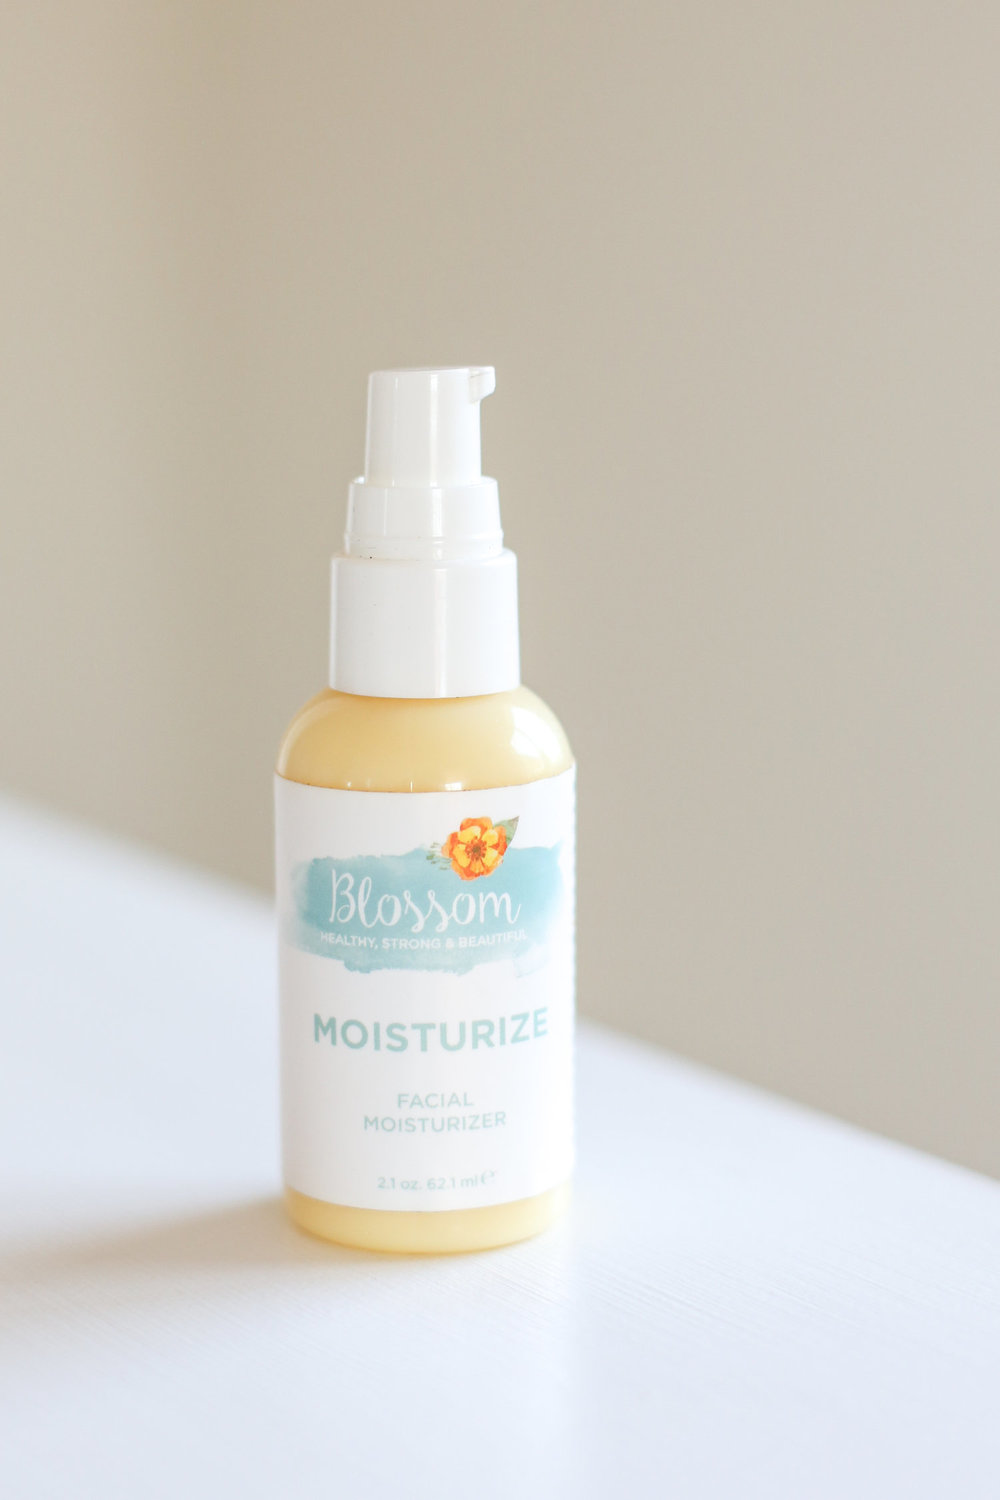 MOISTURIZE - The Moisturizer combines soothing aloe vera with plant oils like argan, jojoba, and avocado oils to seal in water without clogging your pores.